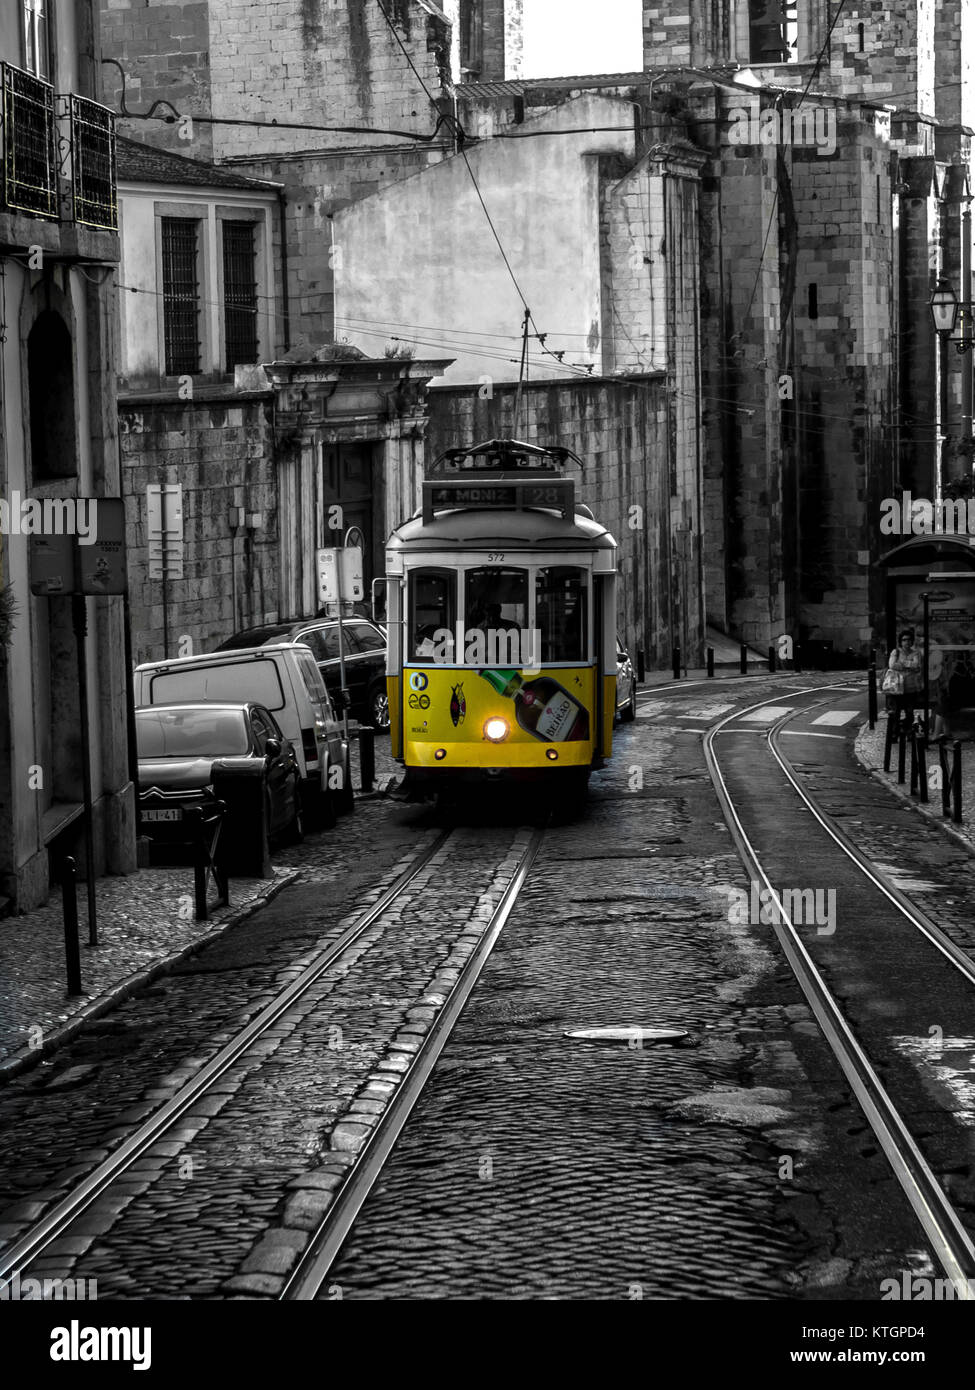 The iconic Tram No. 28 in Lisbon Portugal - Stock Image